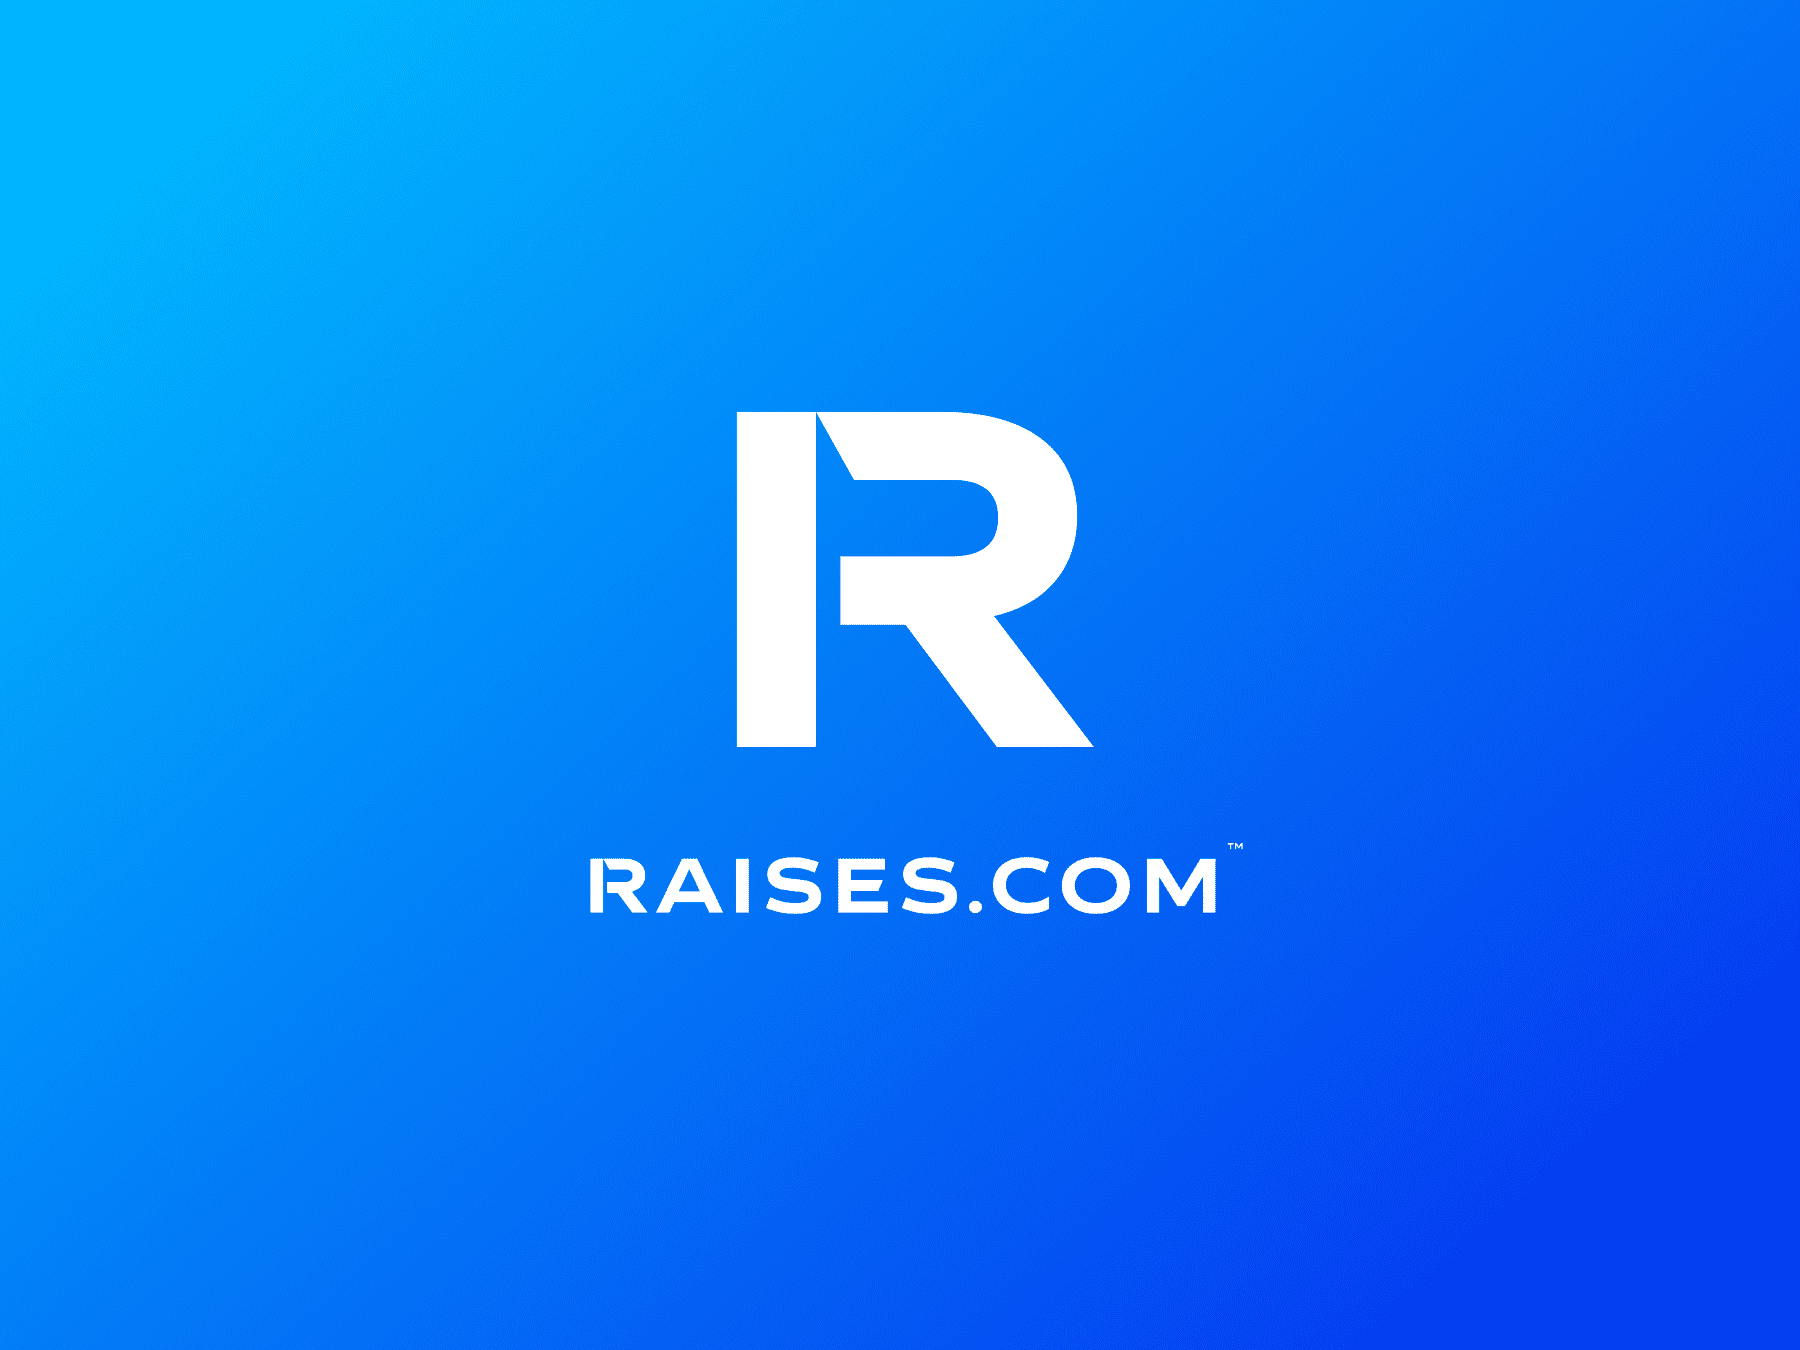 Raises.com, Natu Myers, Natu, Aeropolis Capital, Self Serve Investment Bank, Self-Serve Investment BankAeropolis Capital, Aeropolis, Aeropolis Capital Corporation, Canada Exempt Market Dealer, Canada EMD, How to start an EMD, Security Token Offering Investors, Deal Flow, Security Token Offering, Initial Exchange Offering, Initial Coin Offering, Family Office, High-Net Worth Individuals, Oil and Gas, Infrastructure, Blockchain, AI, Emerging Markets, Investment Banking, Private Equity, Venture Capital, Mezzanine Funding, Debt Financing, Equity Financing, Bridge Financing, Convertible Notes, IEO, STO, ICO, IDO, Private Banking, Decentralized, Broker-Dealer, Broker, Dealer, Issuance, Private Markets, Capital Markets, Fundraising, Fundraiser, Funding, VC, Investor, Angel, Institution, Syndication, Launchpad, STO Investor List of STO VC's STO Family Offices and STO Angel Investors - STO Investor Introductions, Solar Purchase Orders, Purchase Order Finance, Solar EPC, PPE Purchase Order, PPE Purchase Order Finance, Solar PV Purchase Order, FOB purchase order factoring, invoice factoring, global purchase order, global invoice factoring, equipment financing, global broker dealer, procurement, sector agnostic purchase order